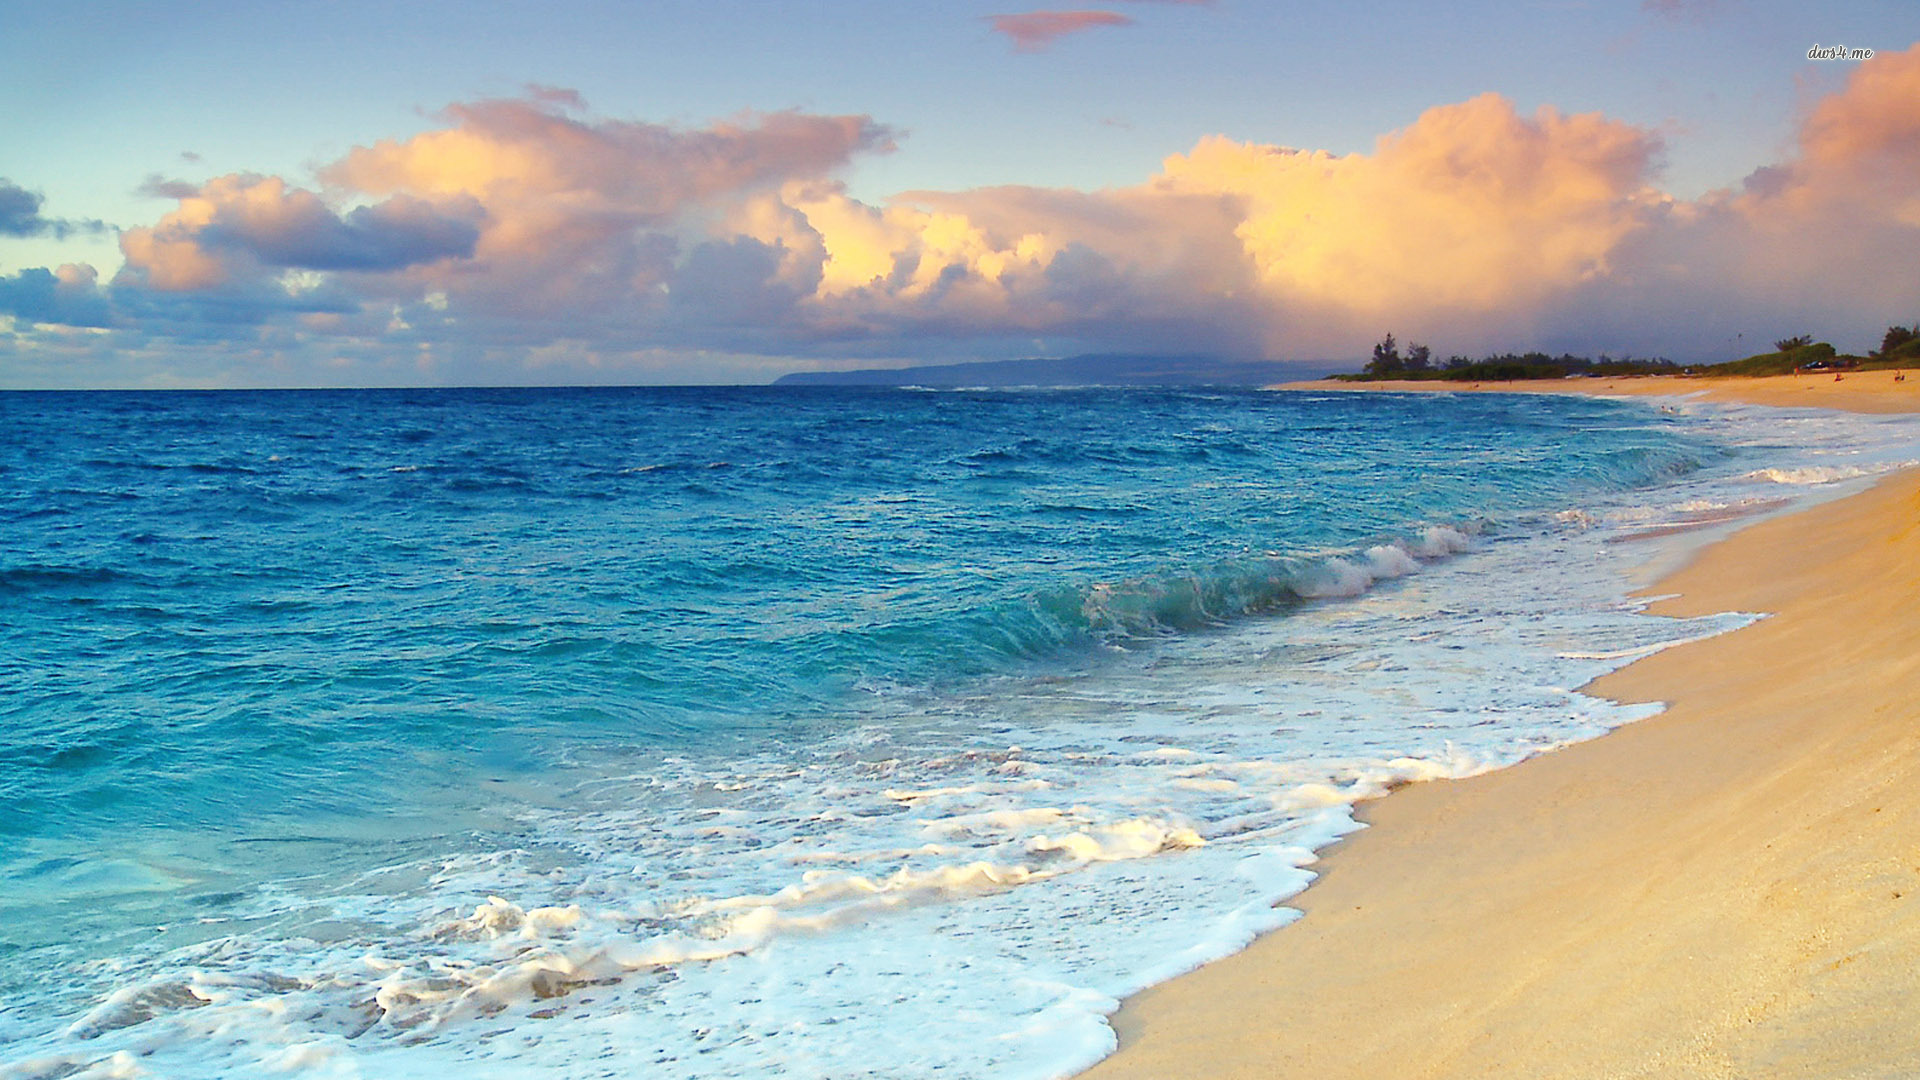 5053 hawaii beach 1920x1080 beach wallpaperjpg 1920x1080